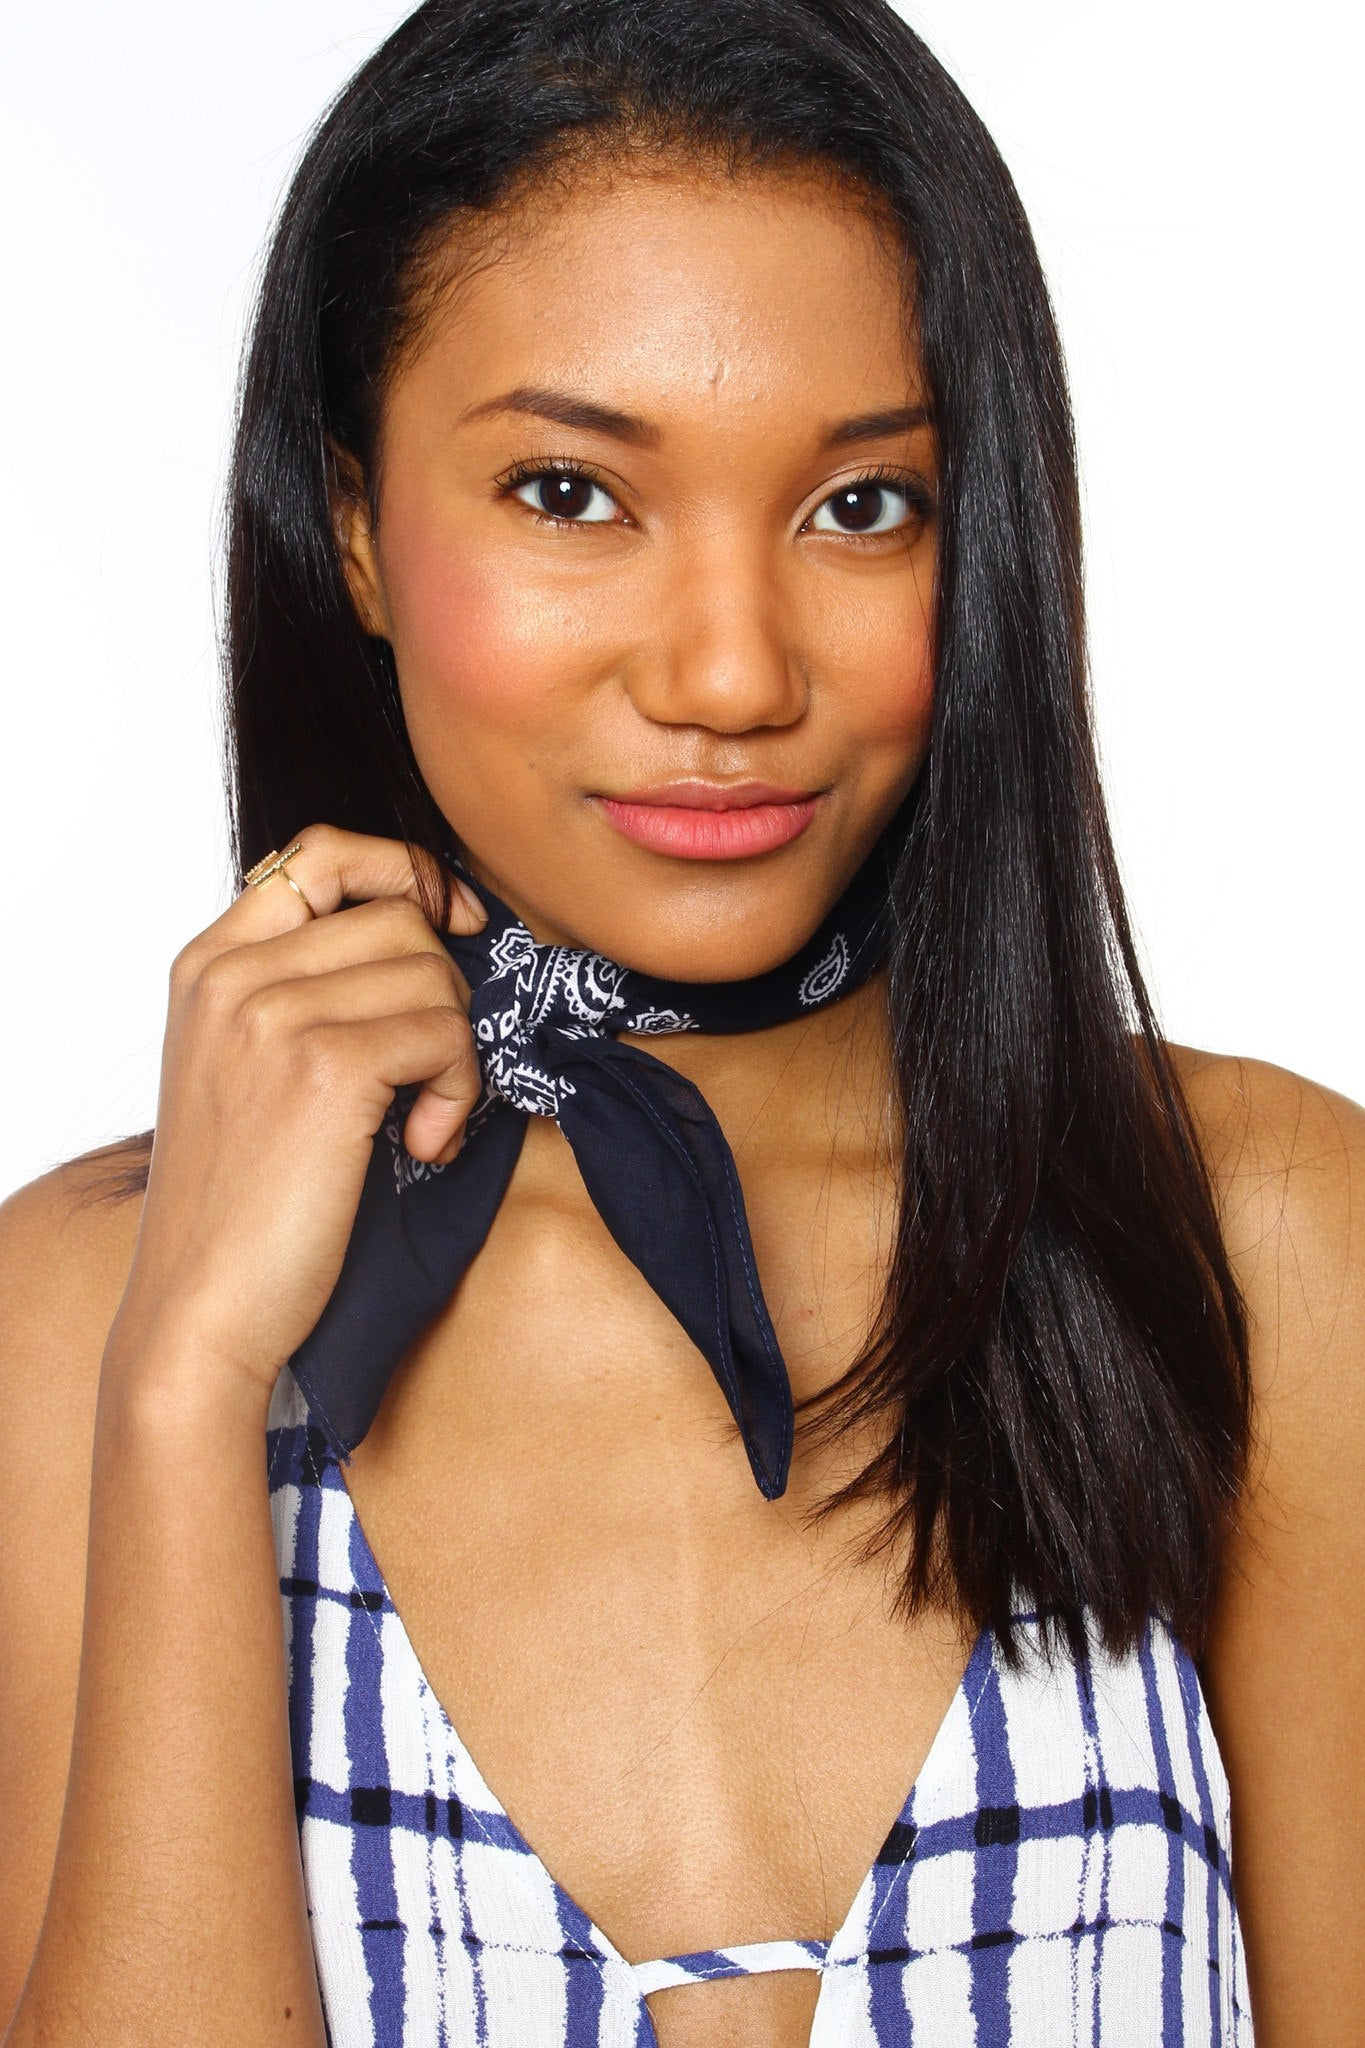 Not So Basic Bandana - Navy